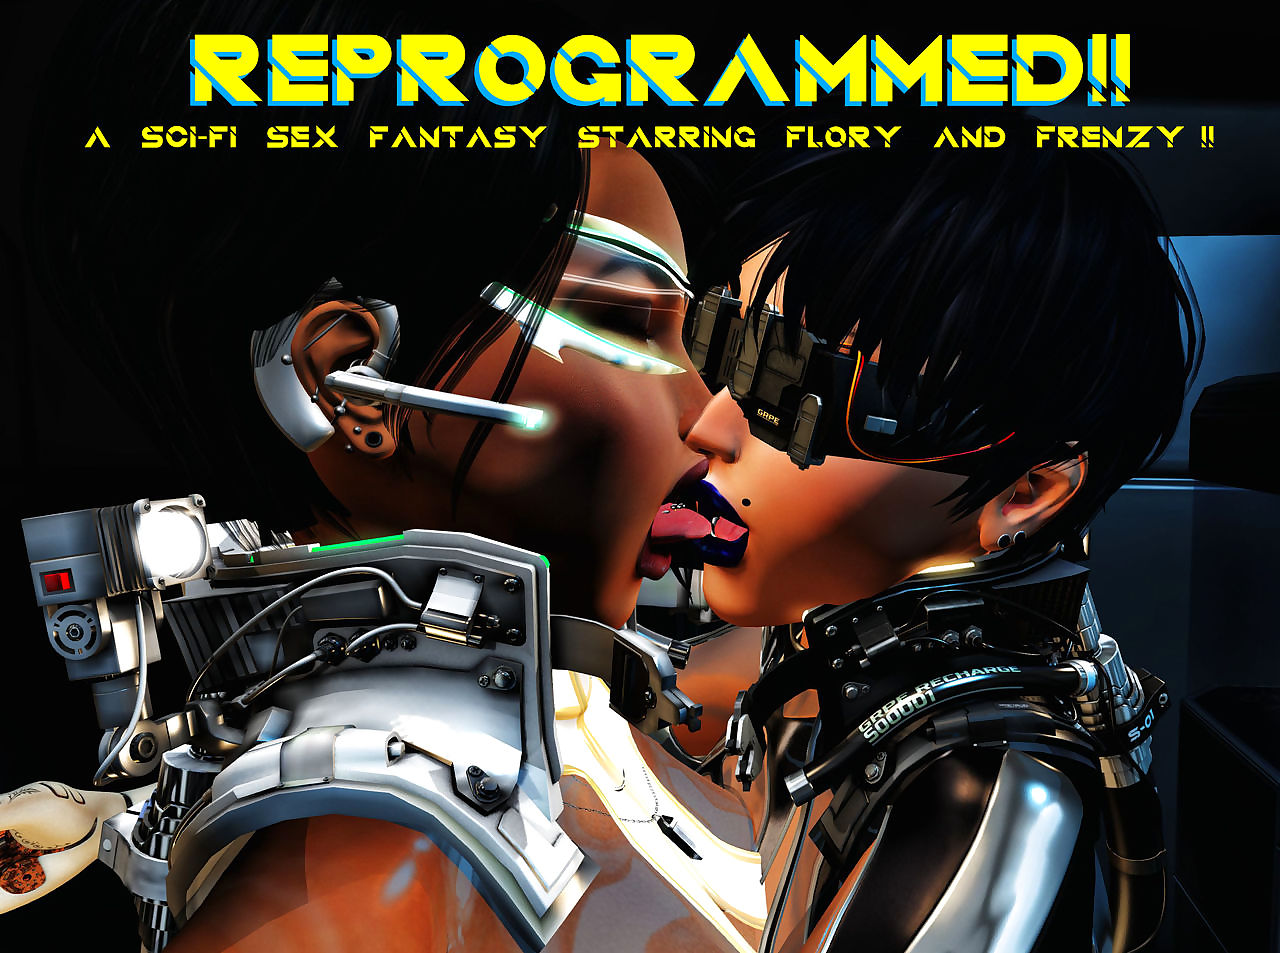 Nympholepsy hither SL- Reprogrammed!